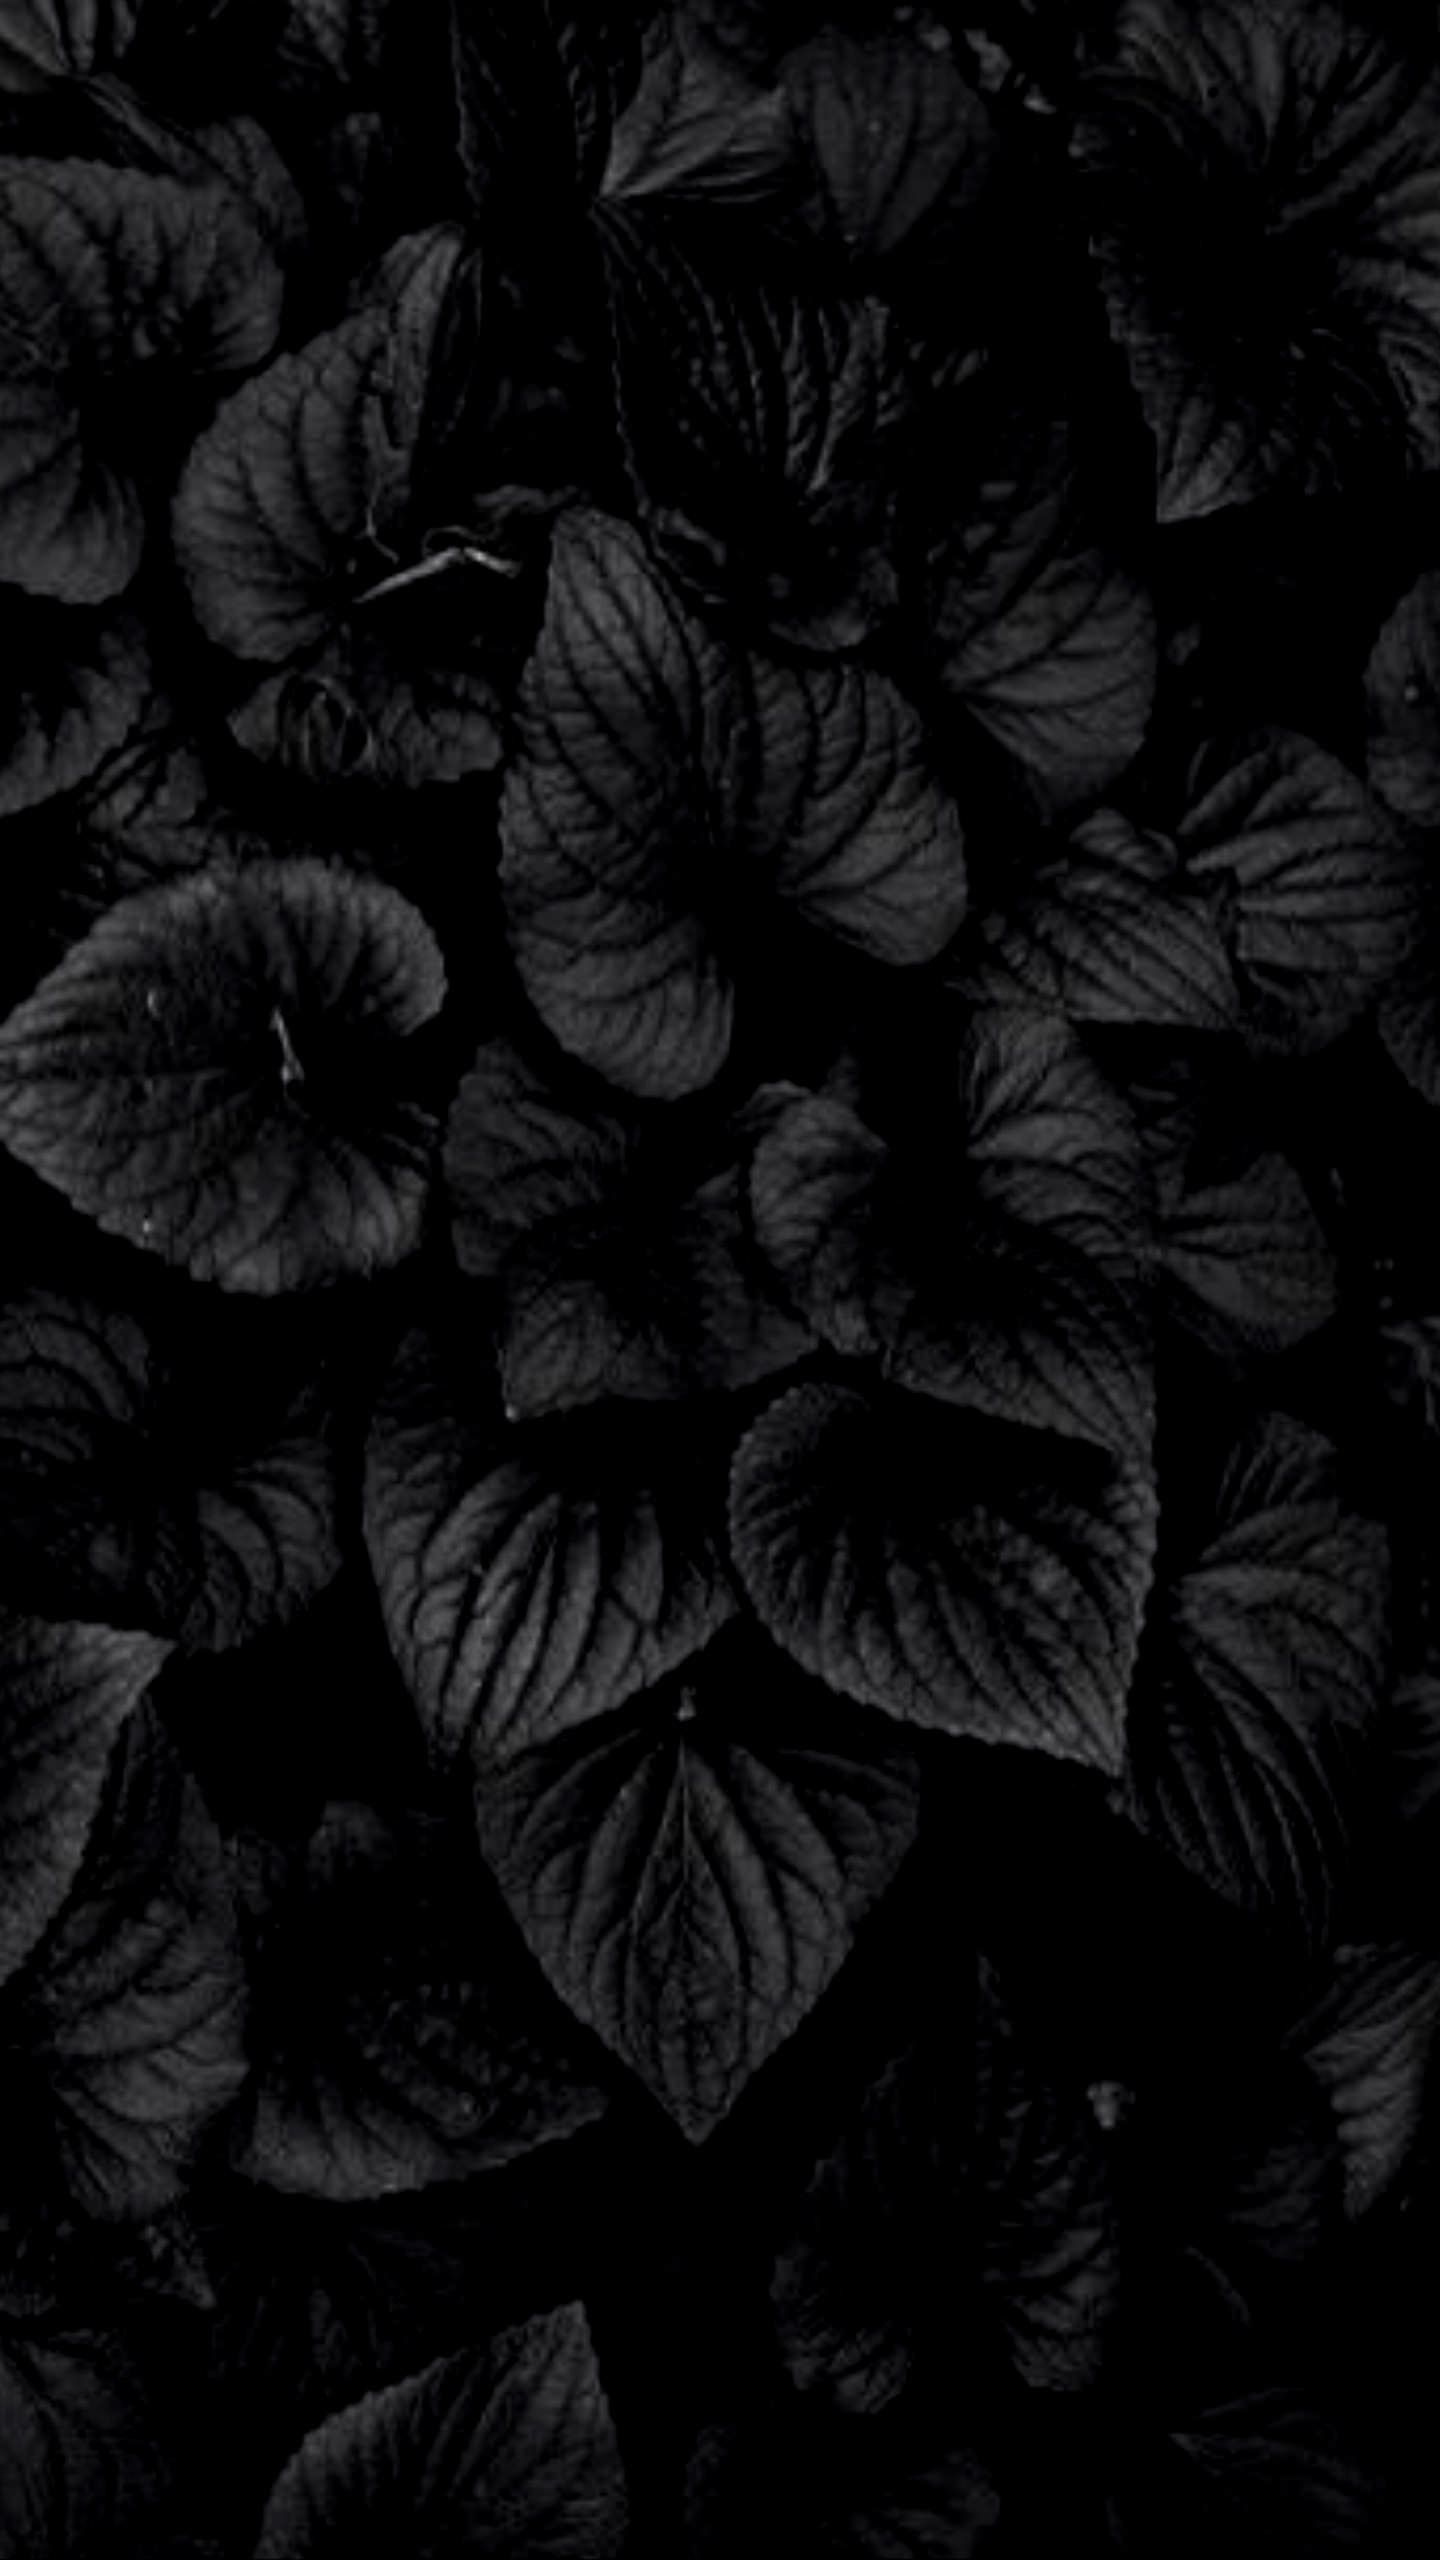 Dark Hd Flowers Wallpapers Top Free Dark Hd Flowers Backgrounds